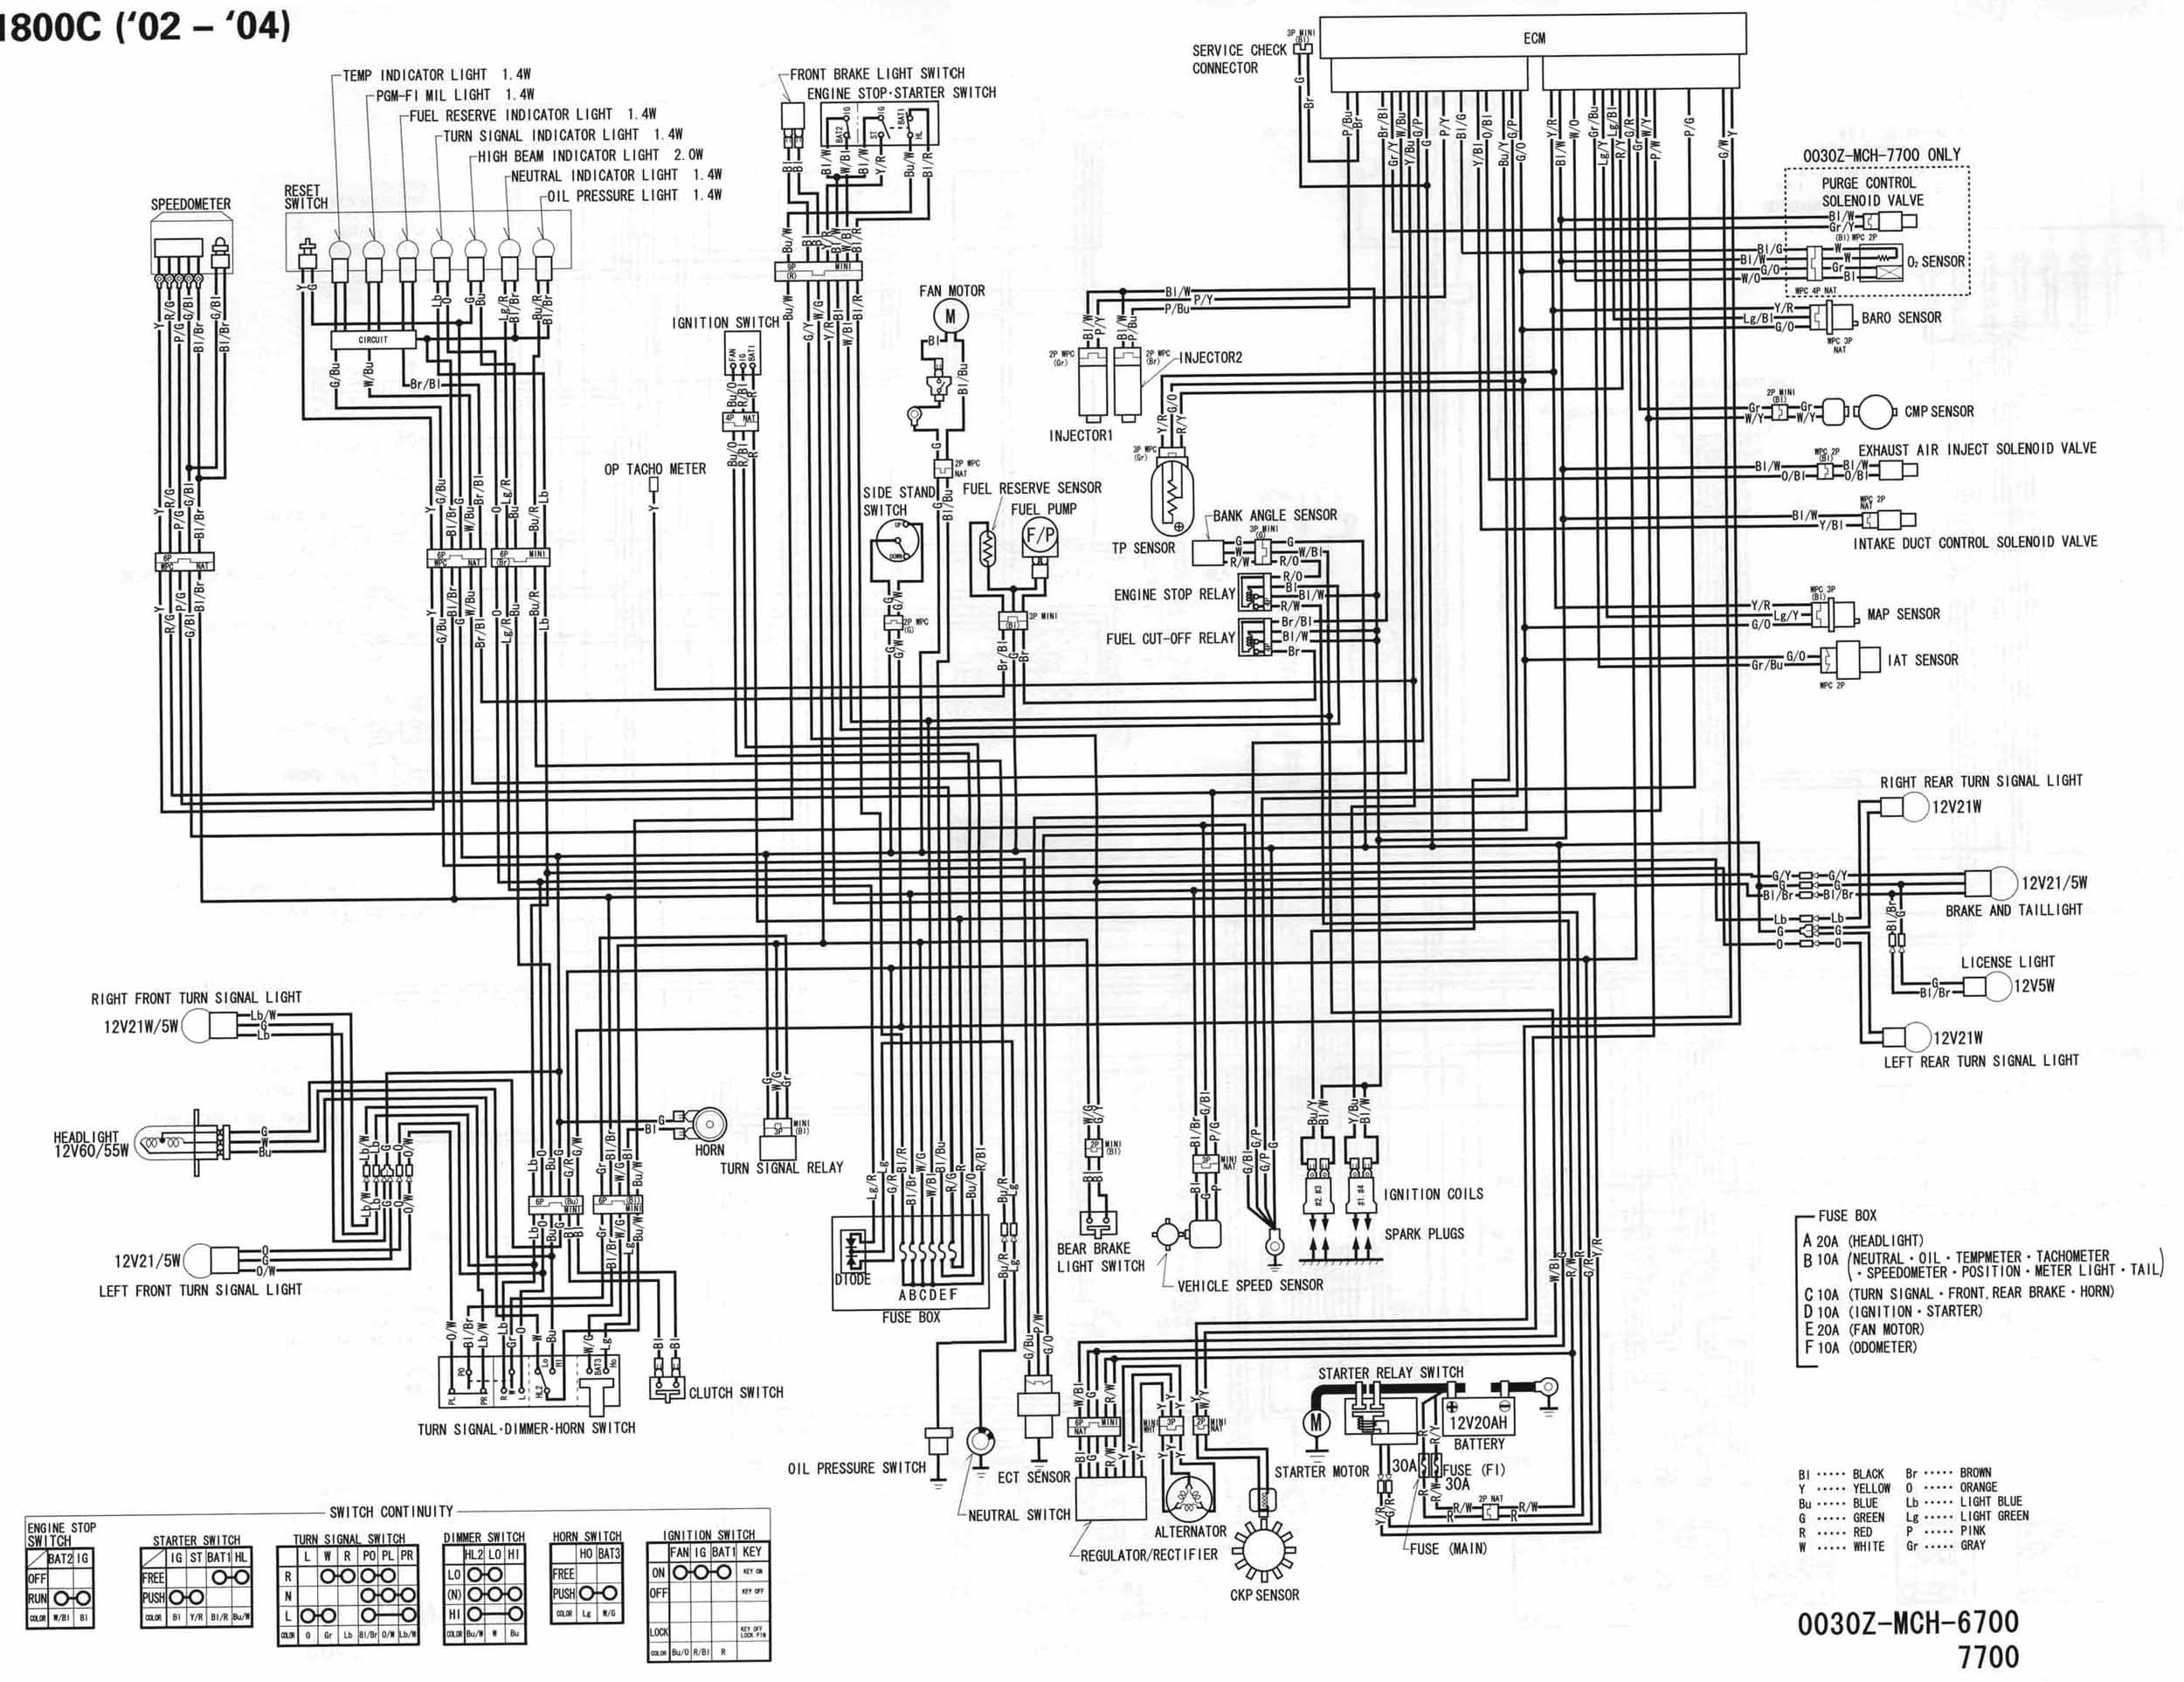 wire schematic motorcycle wire schematics Ã' bareass choppers motorcycle tech pages 02 04 vtx 1800c schematic